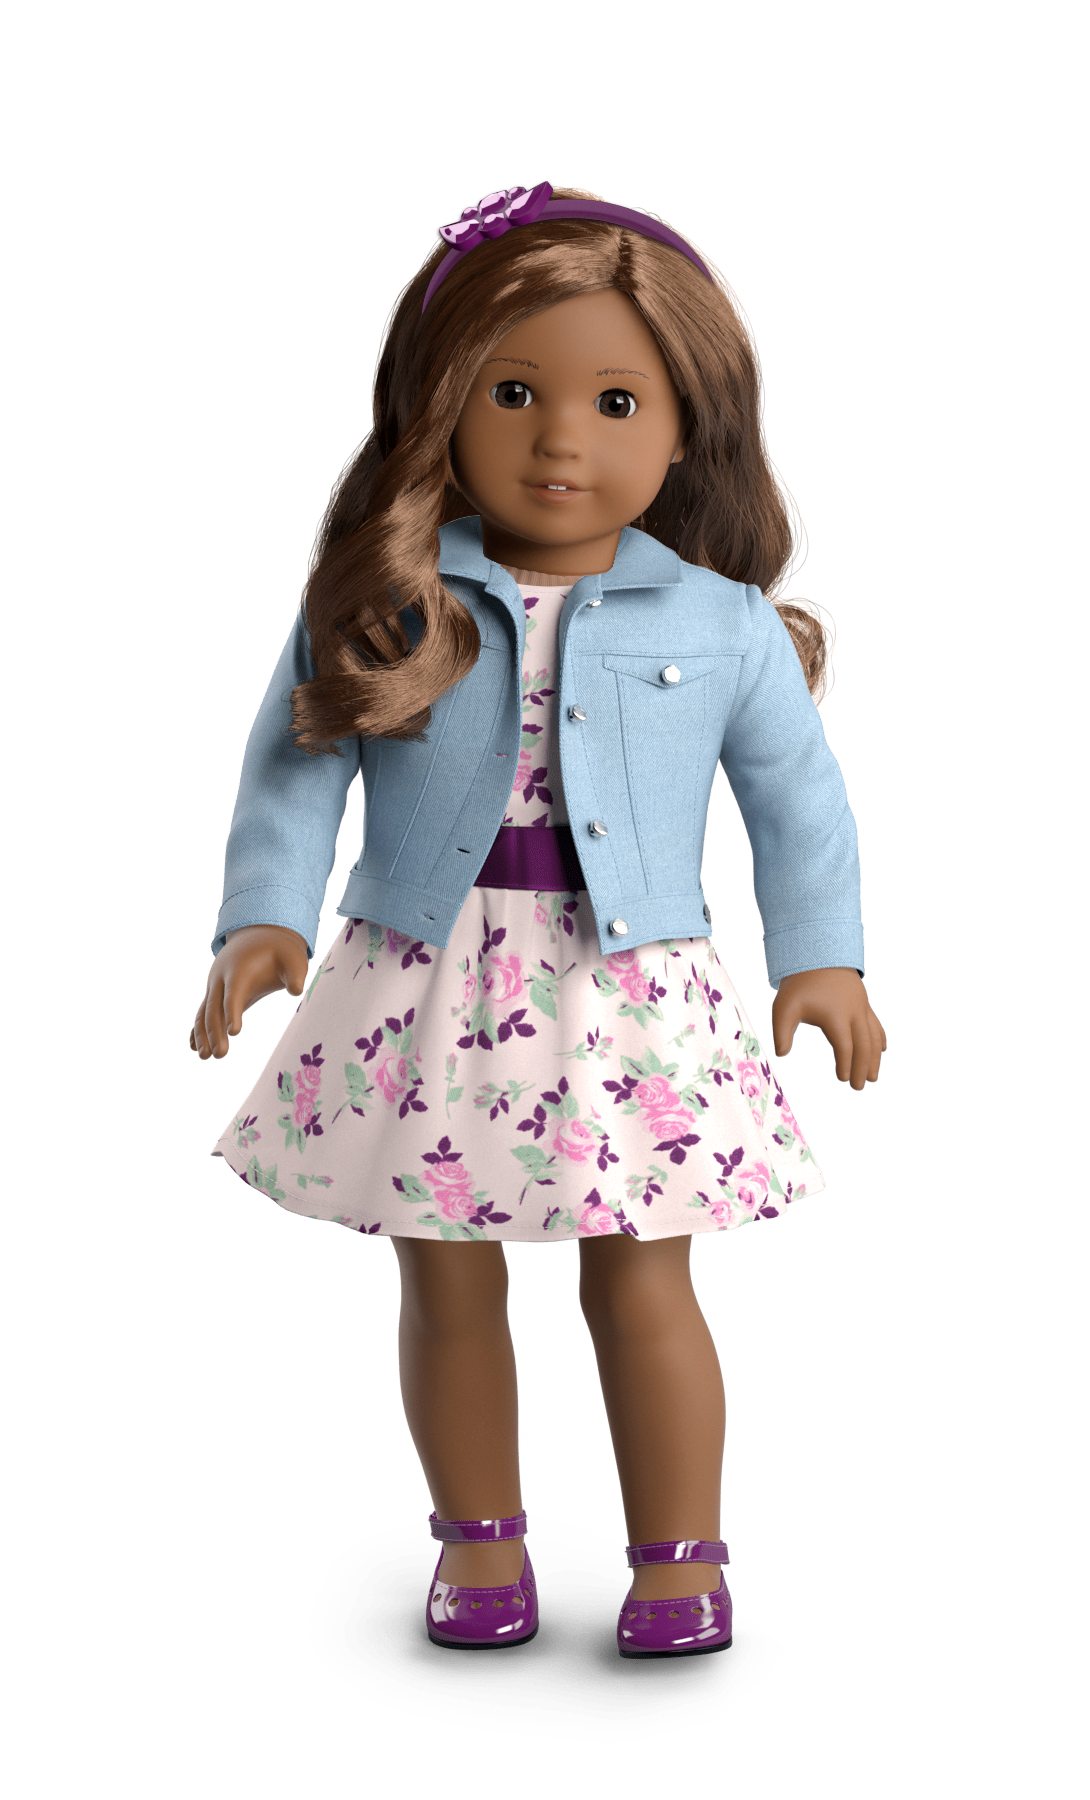 American girl doll star clipart jpg black and white Dollimg 1 | fototo.me jpg black and white